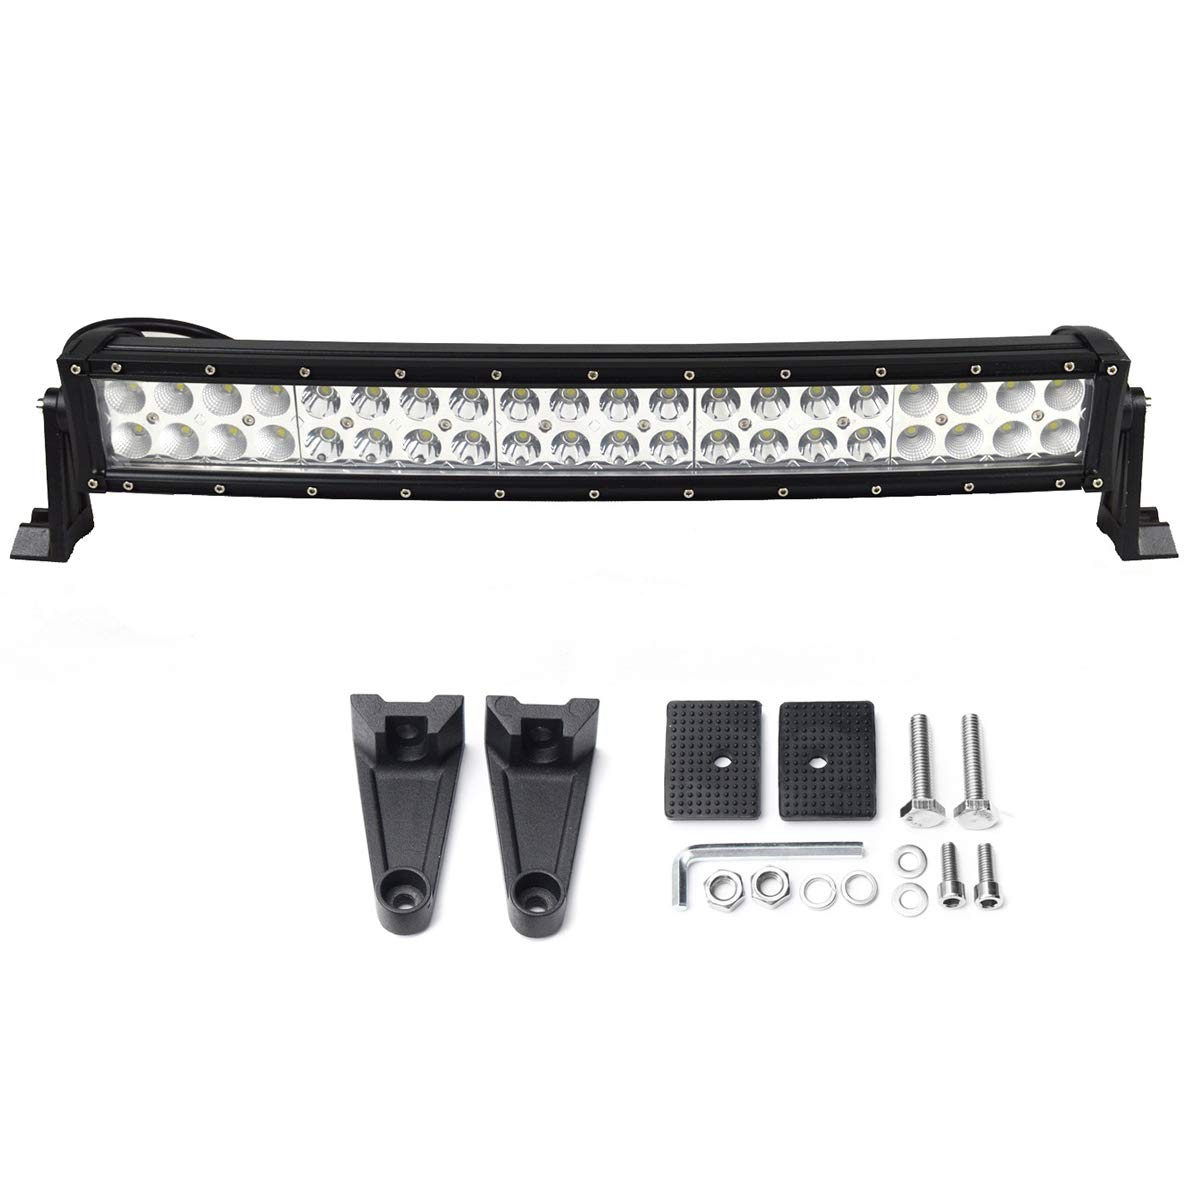 Willpower 32 inch Curved LED Light Bar 180W Double Spot Flood Combo Led Driving Fog Work Lightbar with Mounting Bracket for 4x4 Off Road Boat SUV UTE ATV Truck